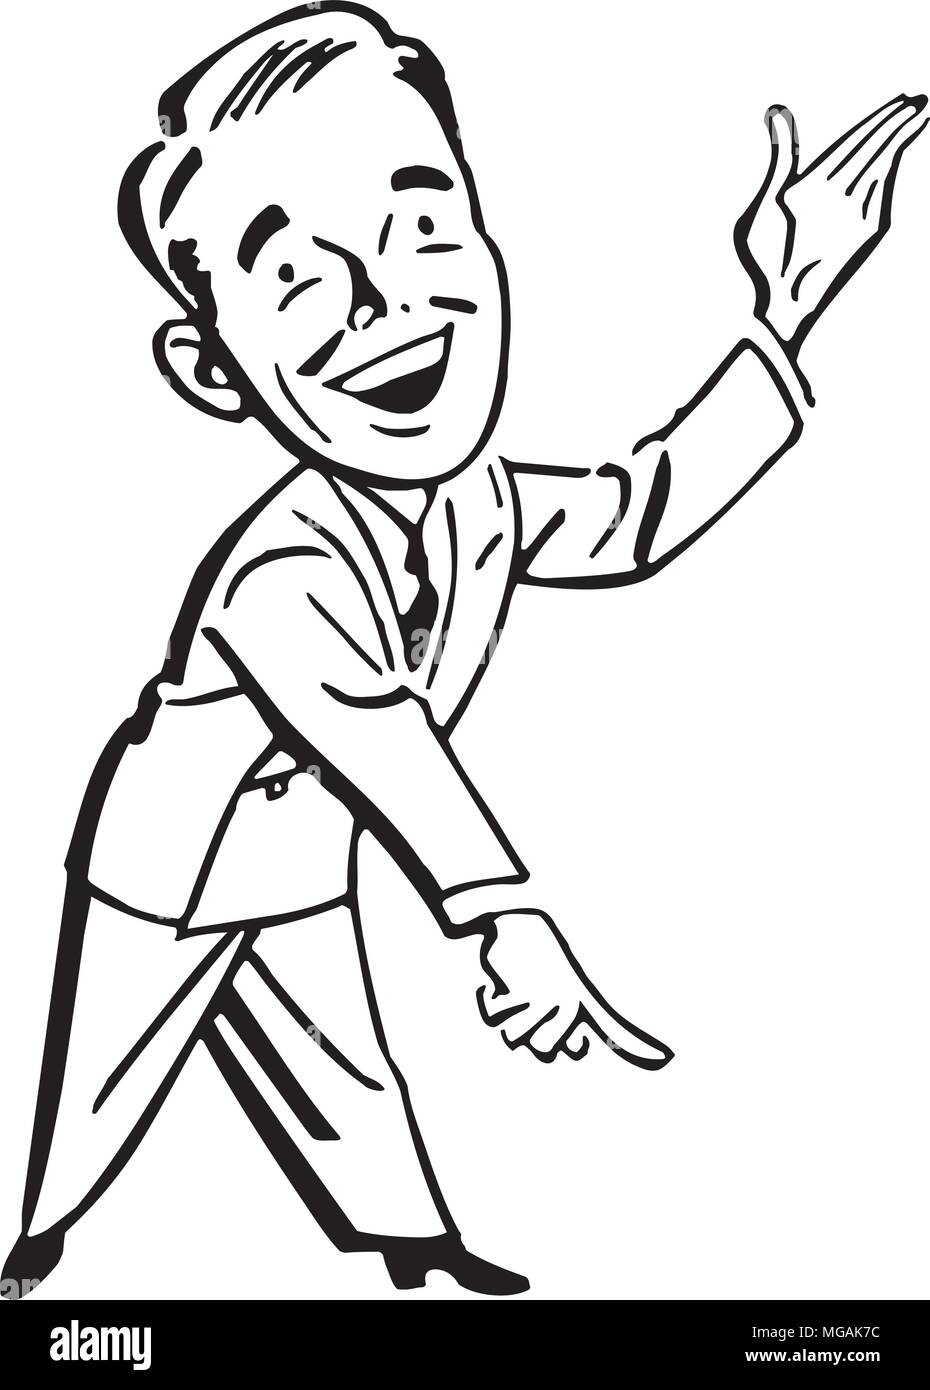 Pointing Man - Retro Clipart Illustration - Stock Image